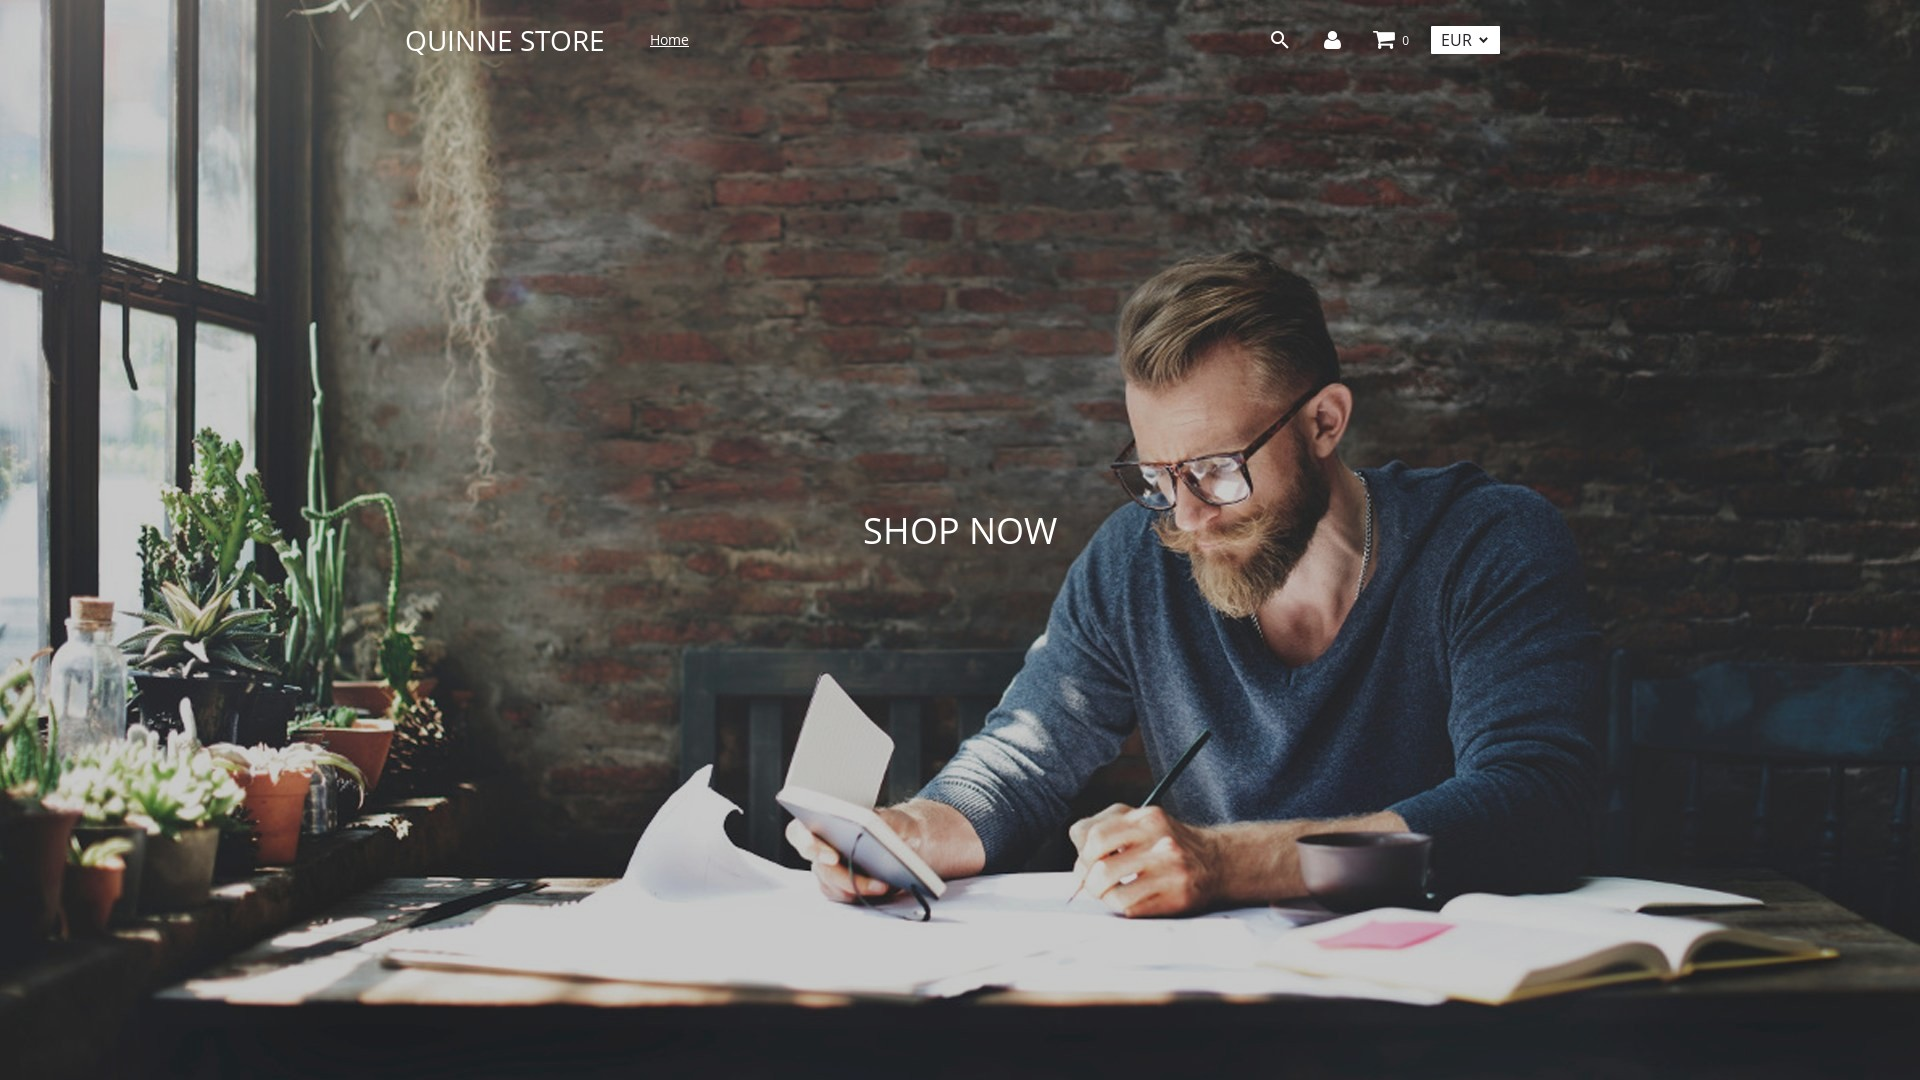 Is Quinne Store a Scam? See the Review of the Online Shop